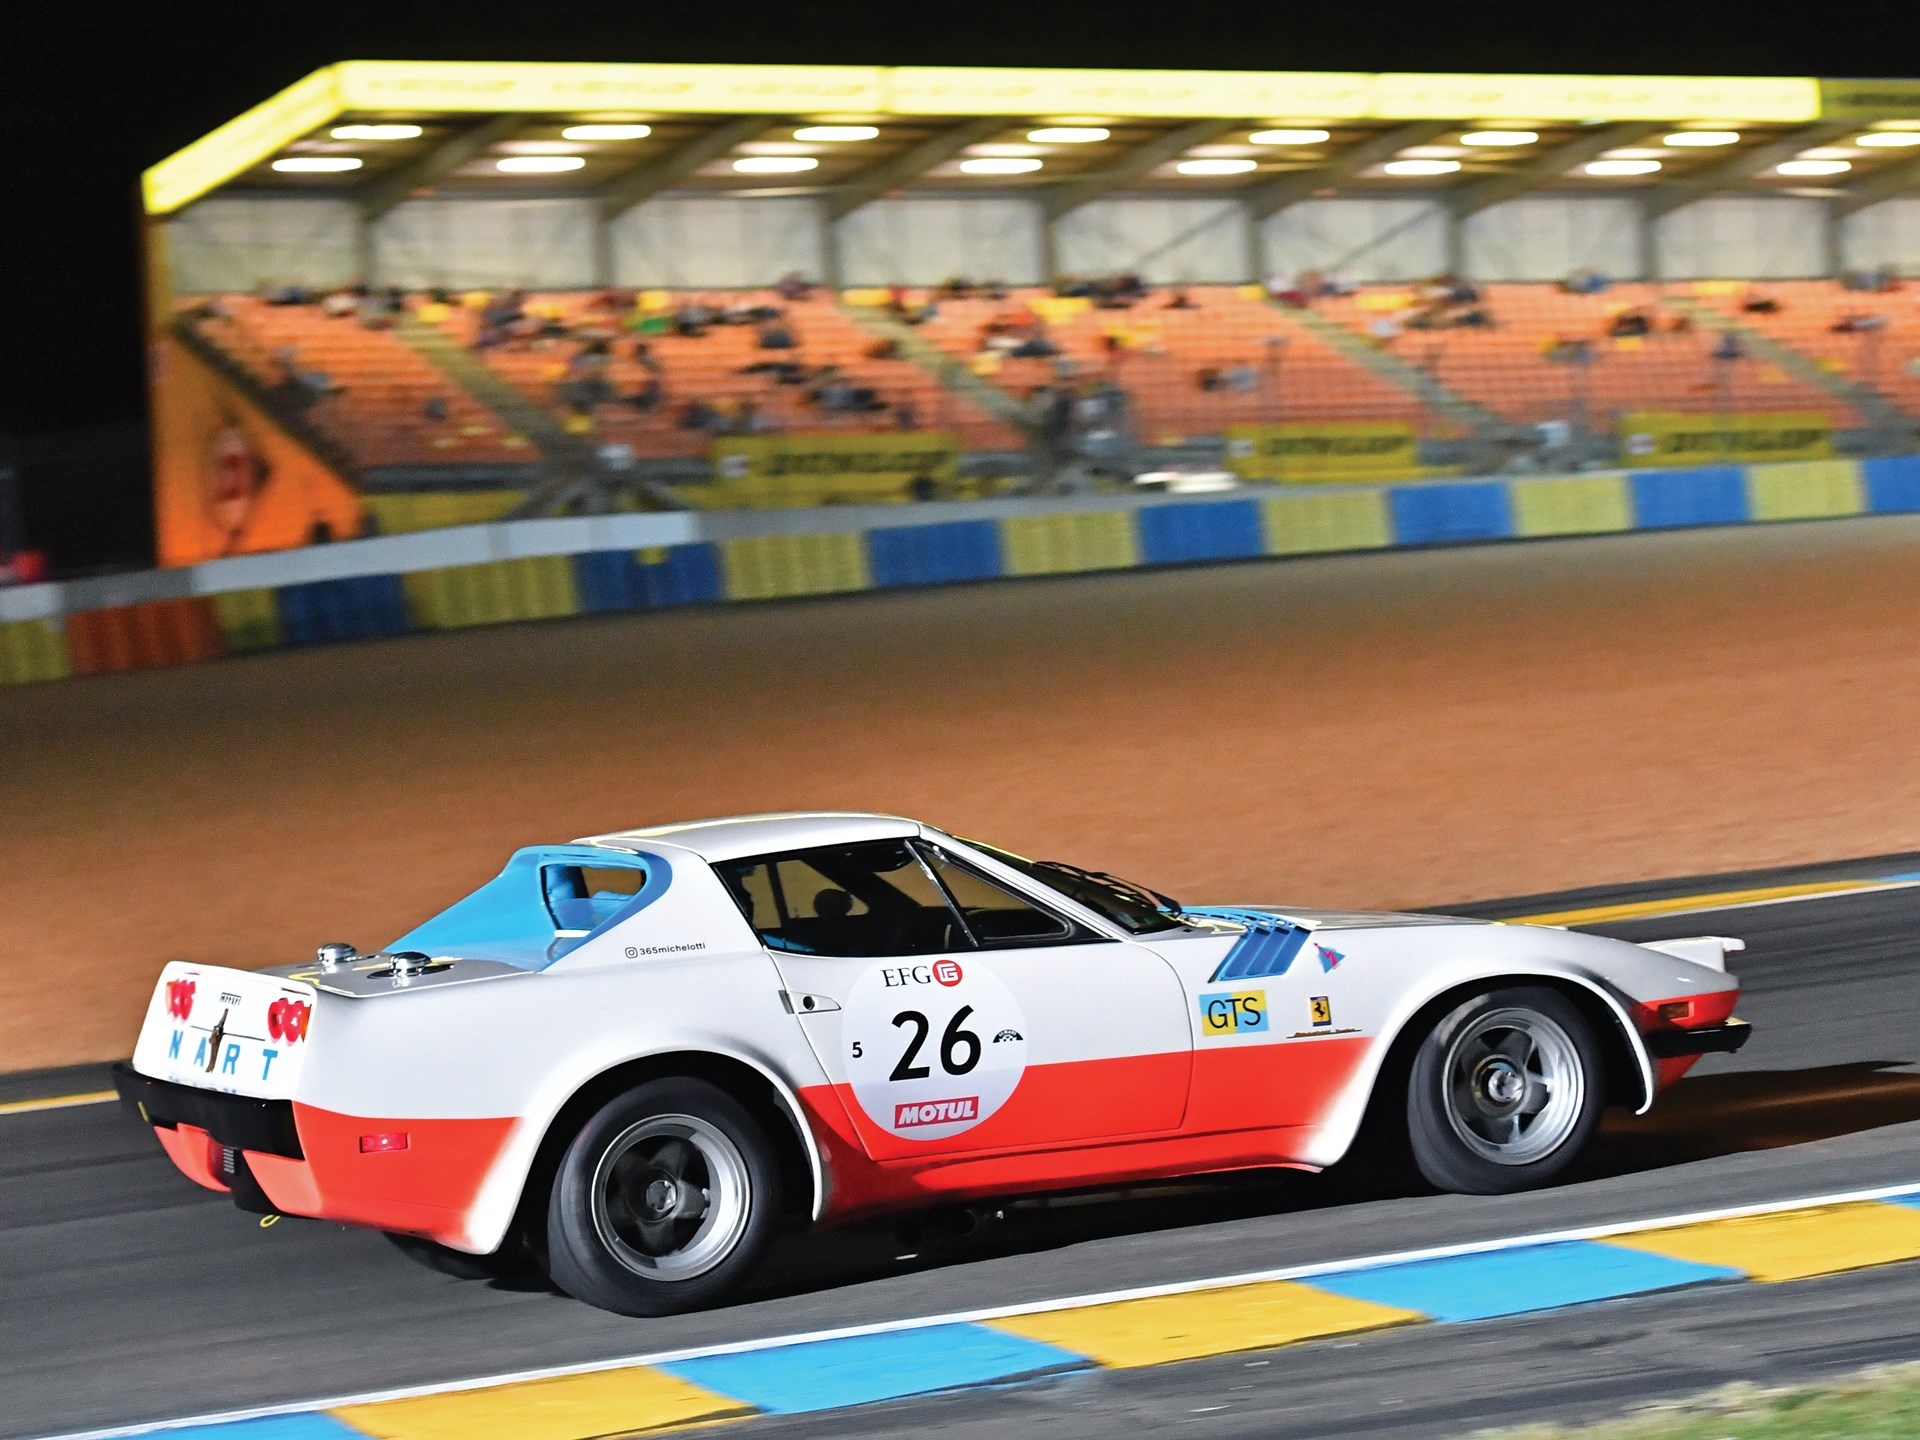 The 365 GTB/4 Spider Michelotti races through the night at the 2016 Le Mans Classic.